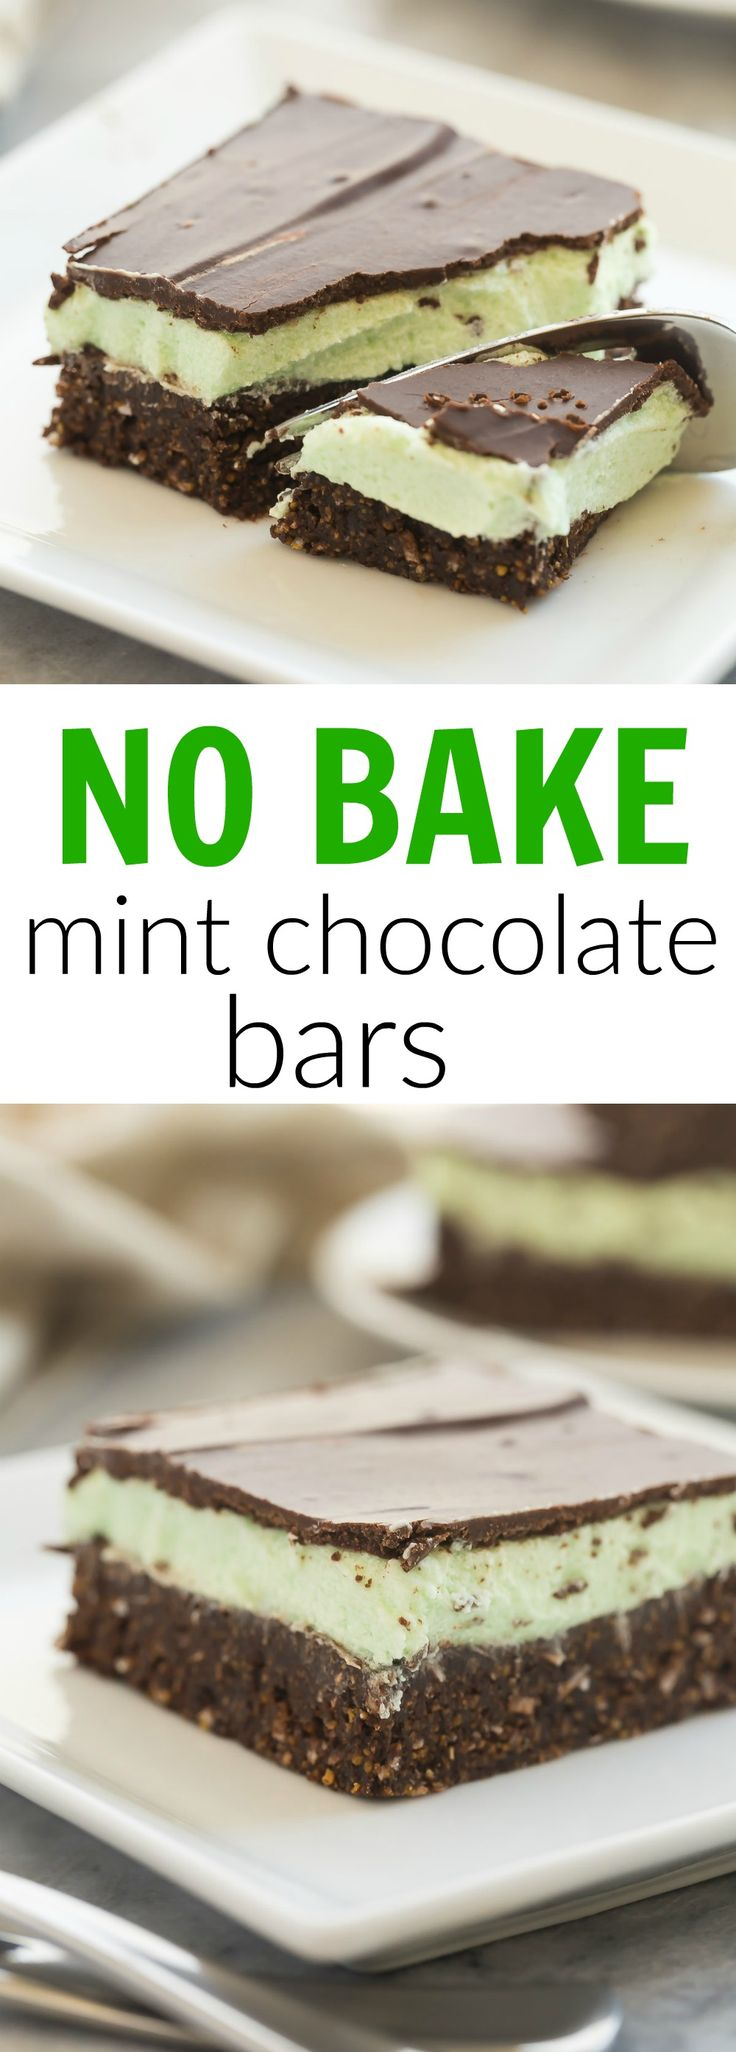 No Bake Mint Chocolate Bars | Recipe | Mint frosting, Graham cracker ...